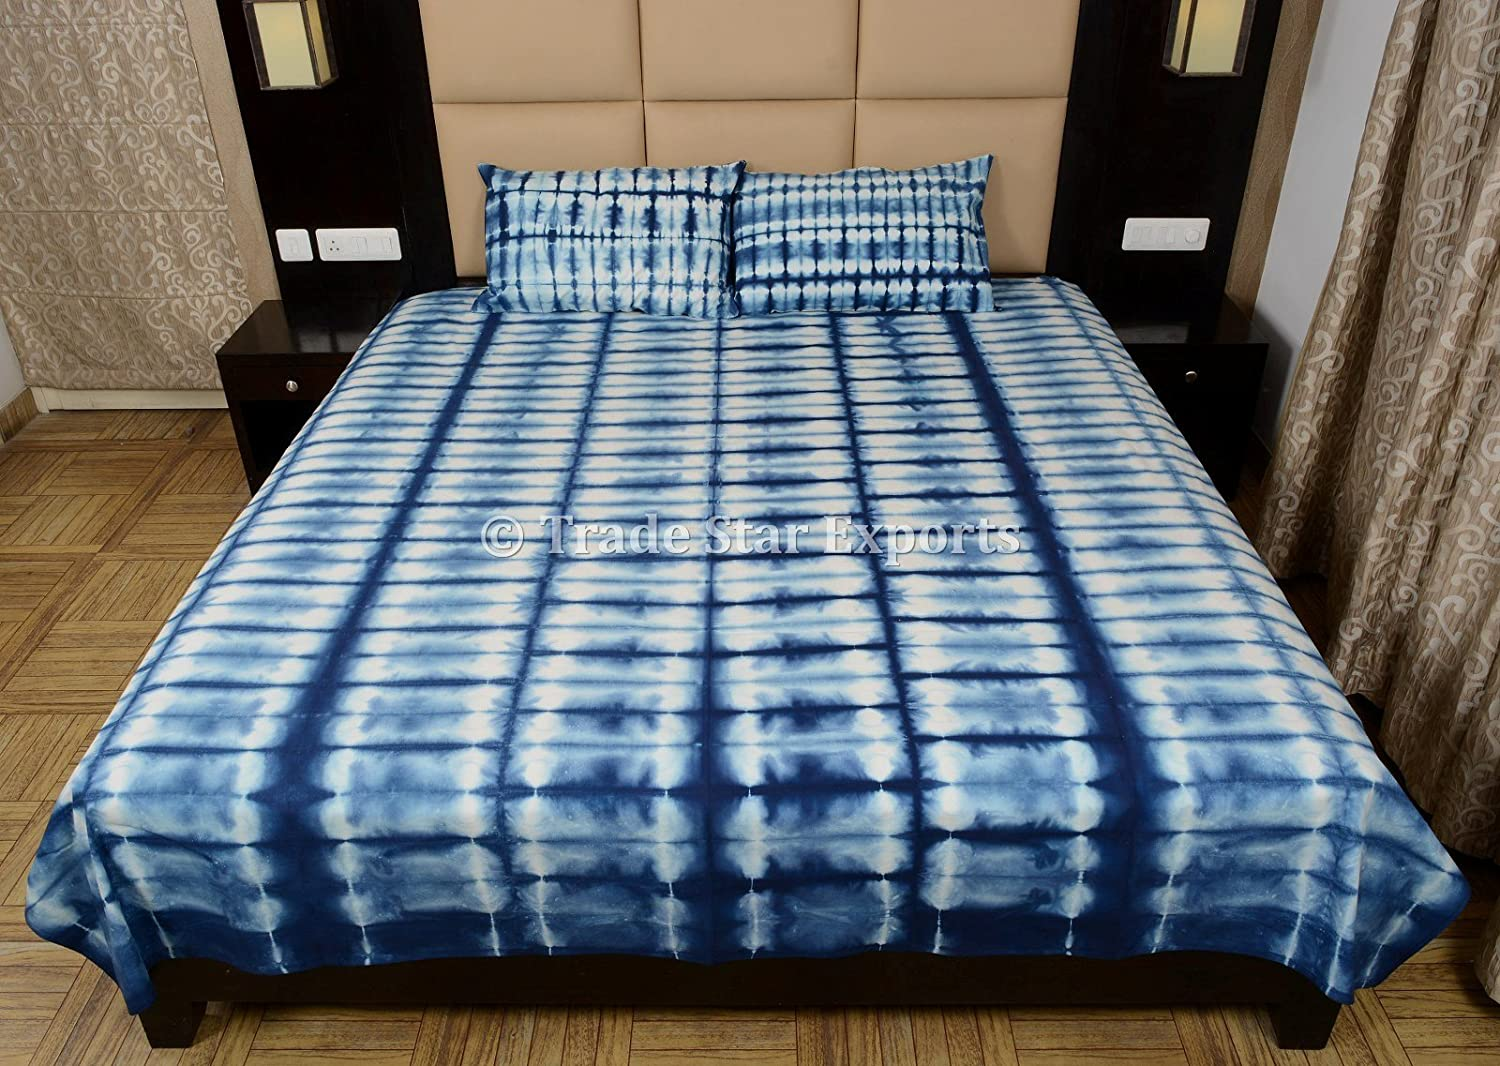 Amazon.com: Handmade Indigo Dyed Bedding Set, Shibori Bedspread With Shams,  Tie Dye Bed Cover With Pillow Cover, Indian Cotton Bed Sheet: Home U0026 Kitchen